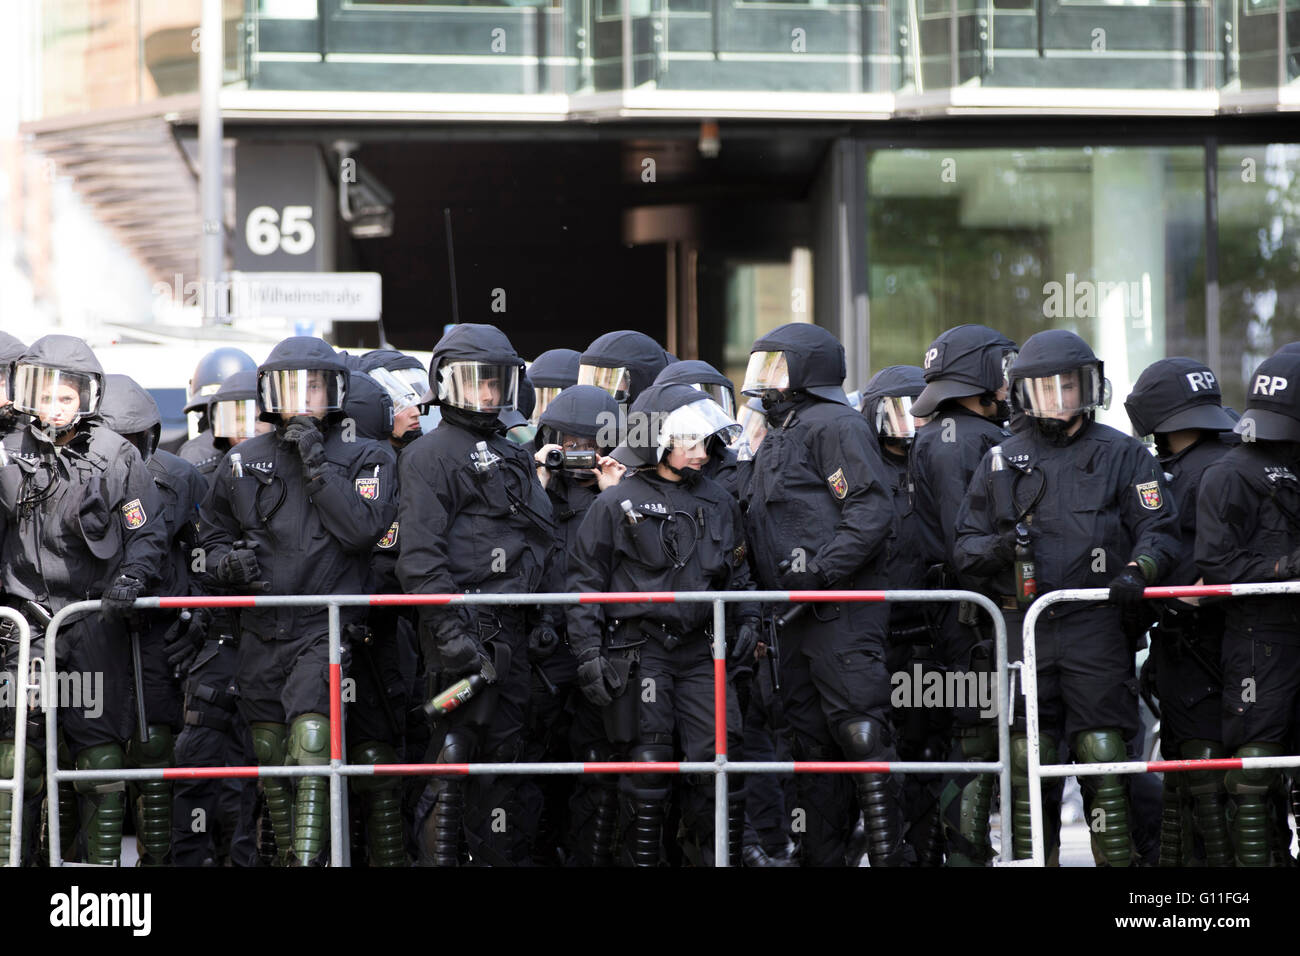 Thousands of anti-fascist campaigners held a counter protest against right-wing groups in Berlin. Hundreds of police - Stock Image